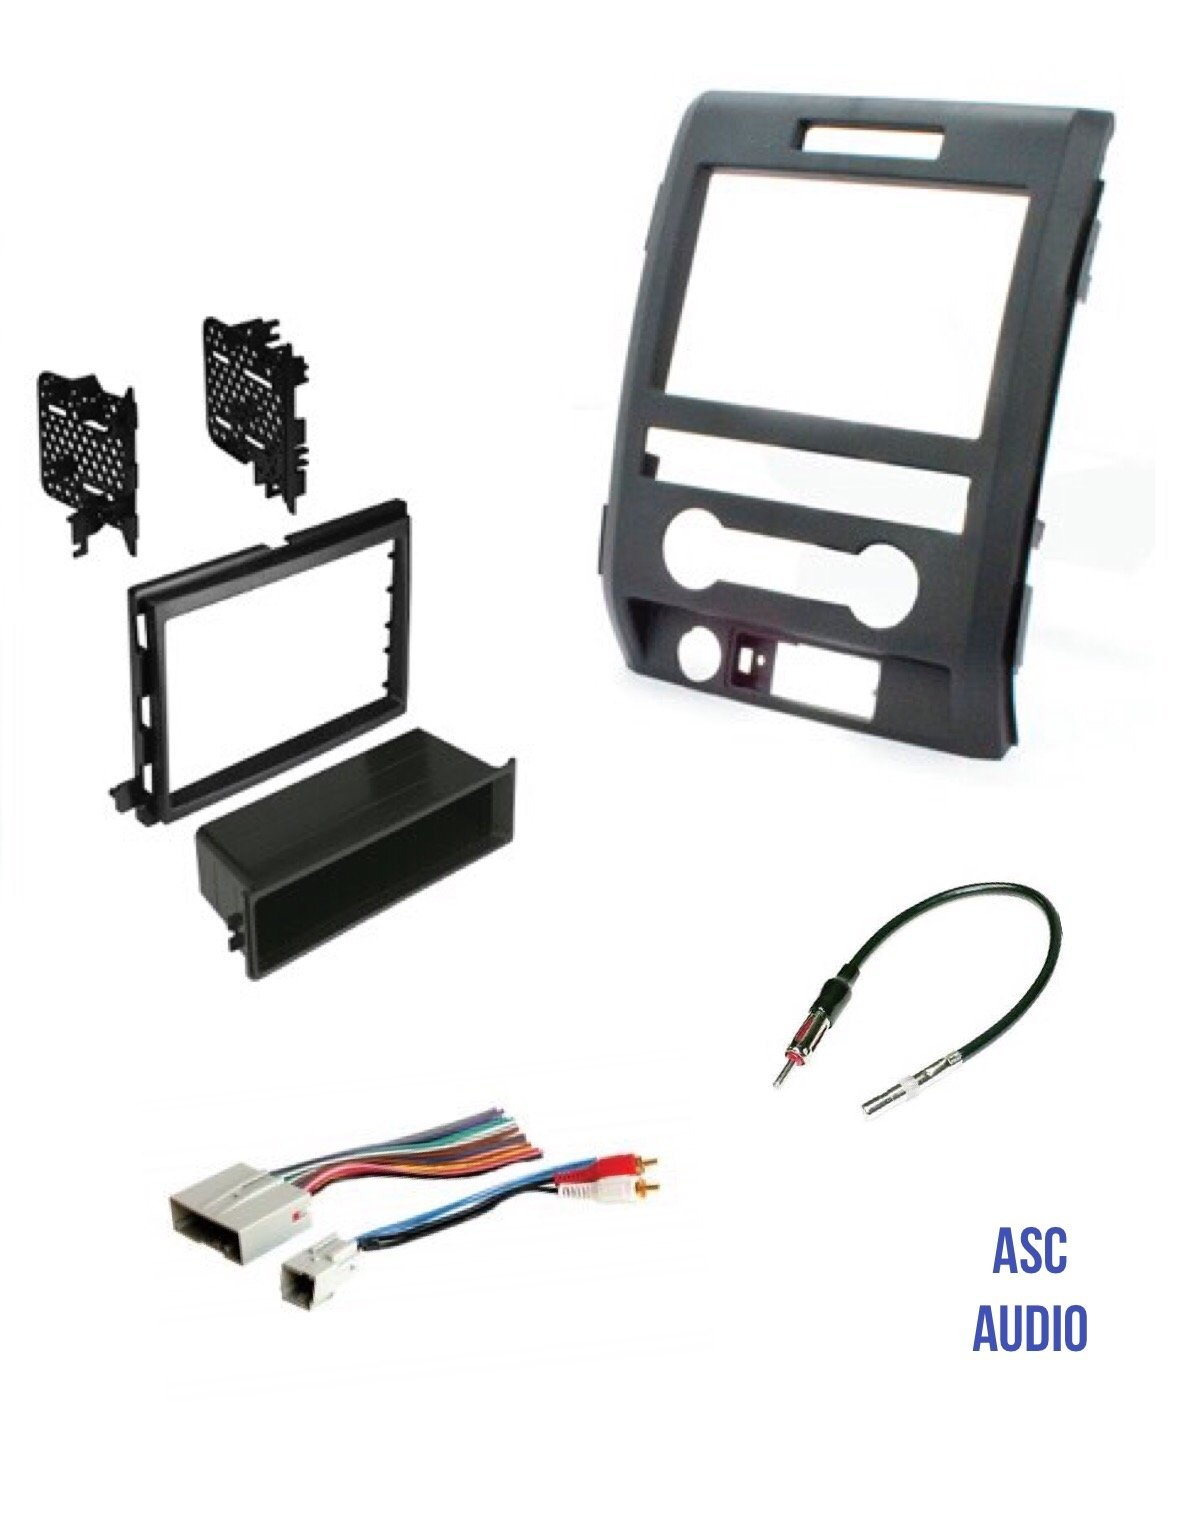 Asc Audio Car Stereo Radio Install Dash Kit Wire Harness And Harmony Antenna Adapter To A